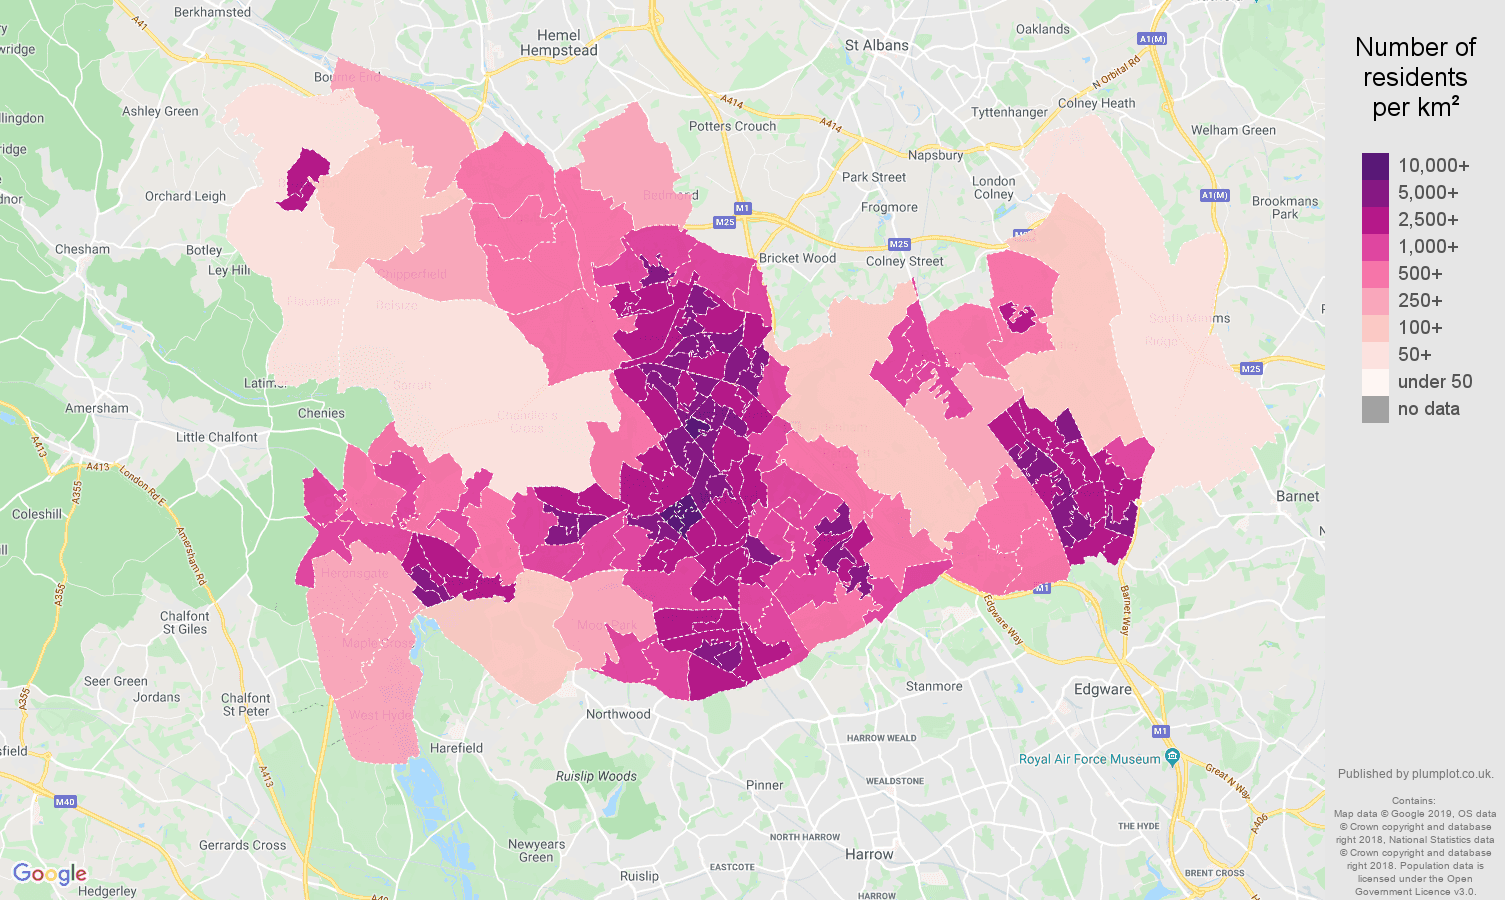 Watford population density map